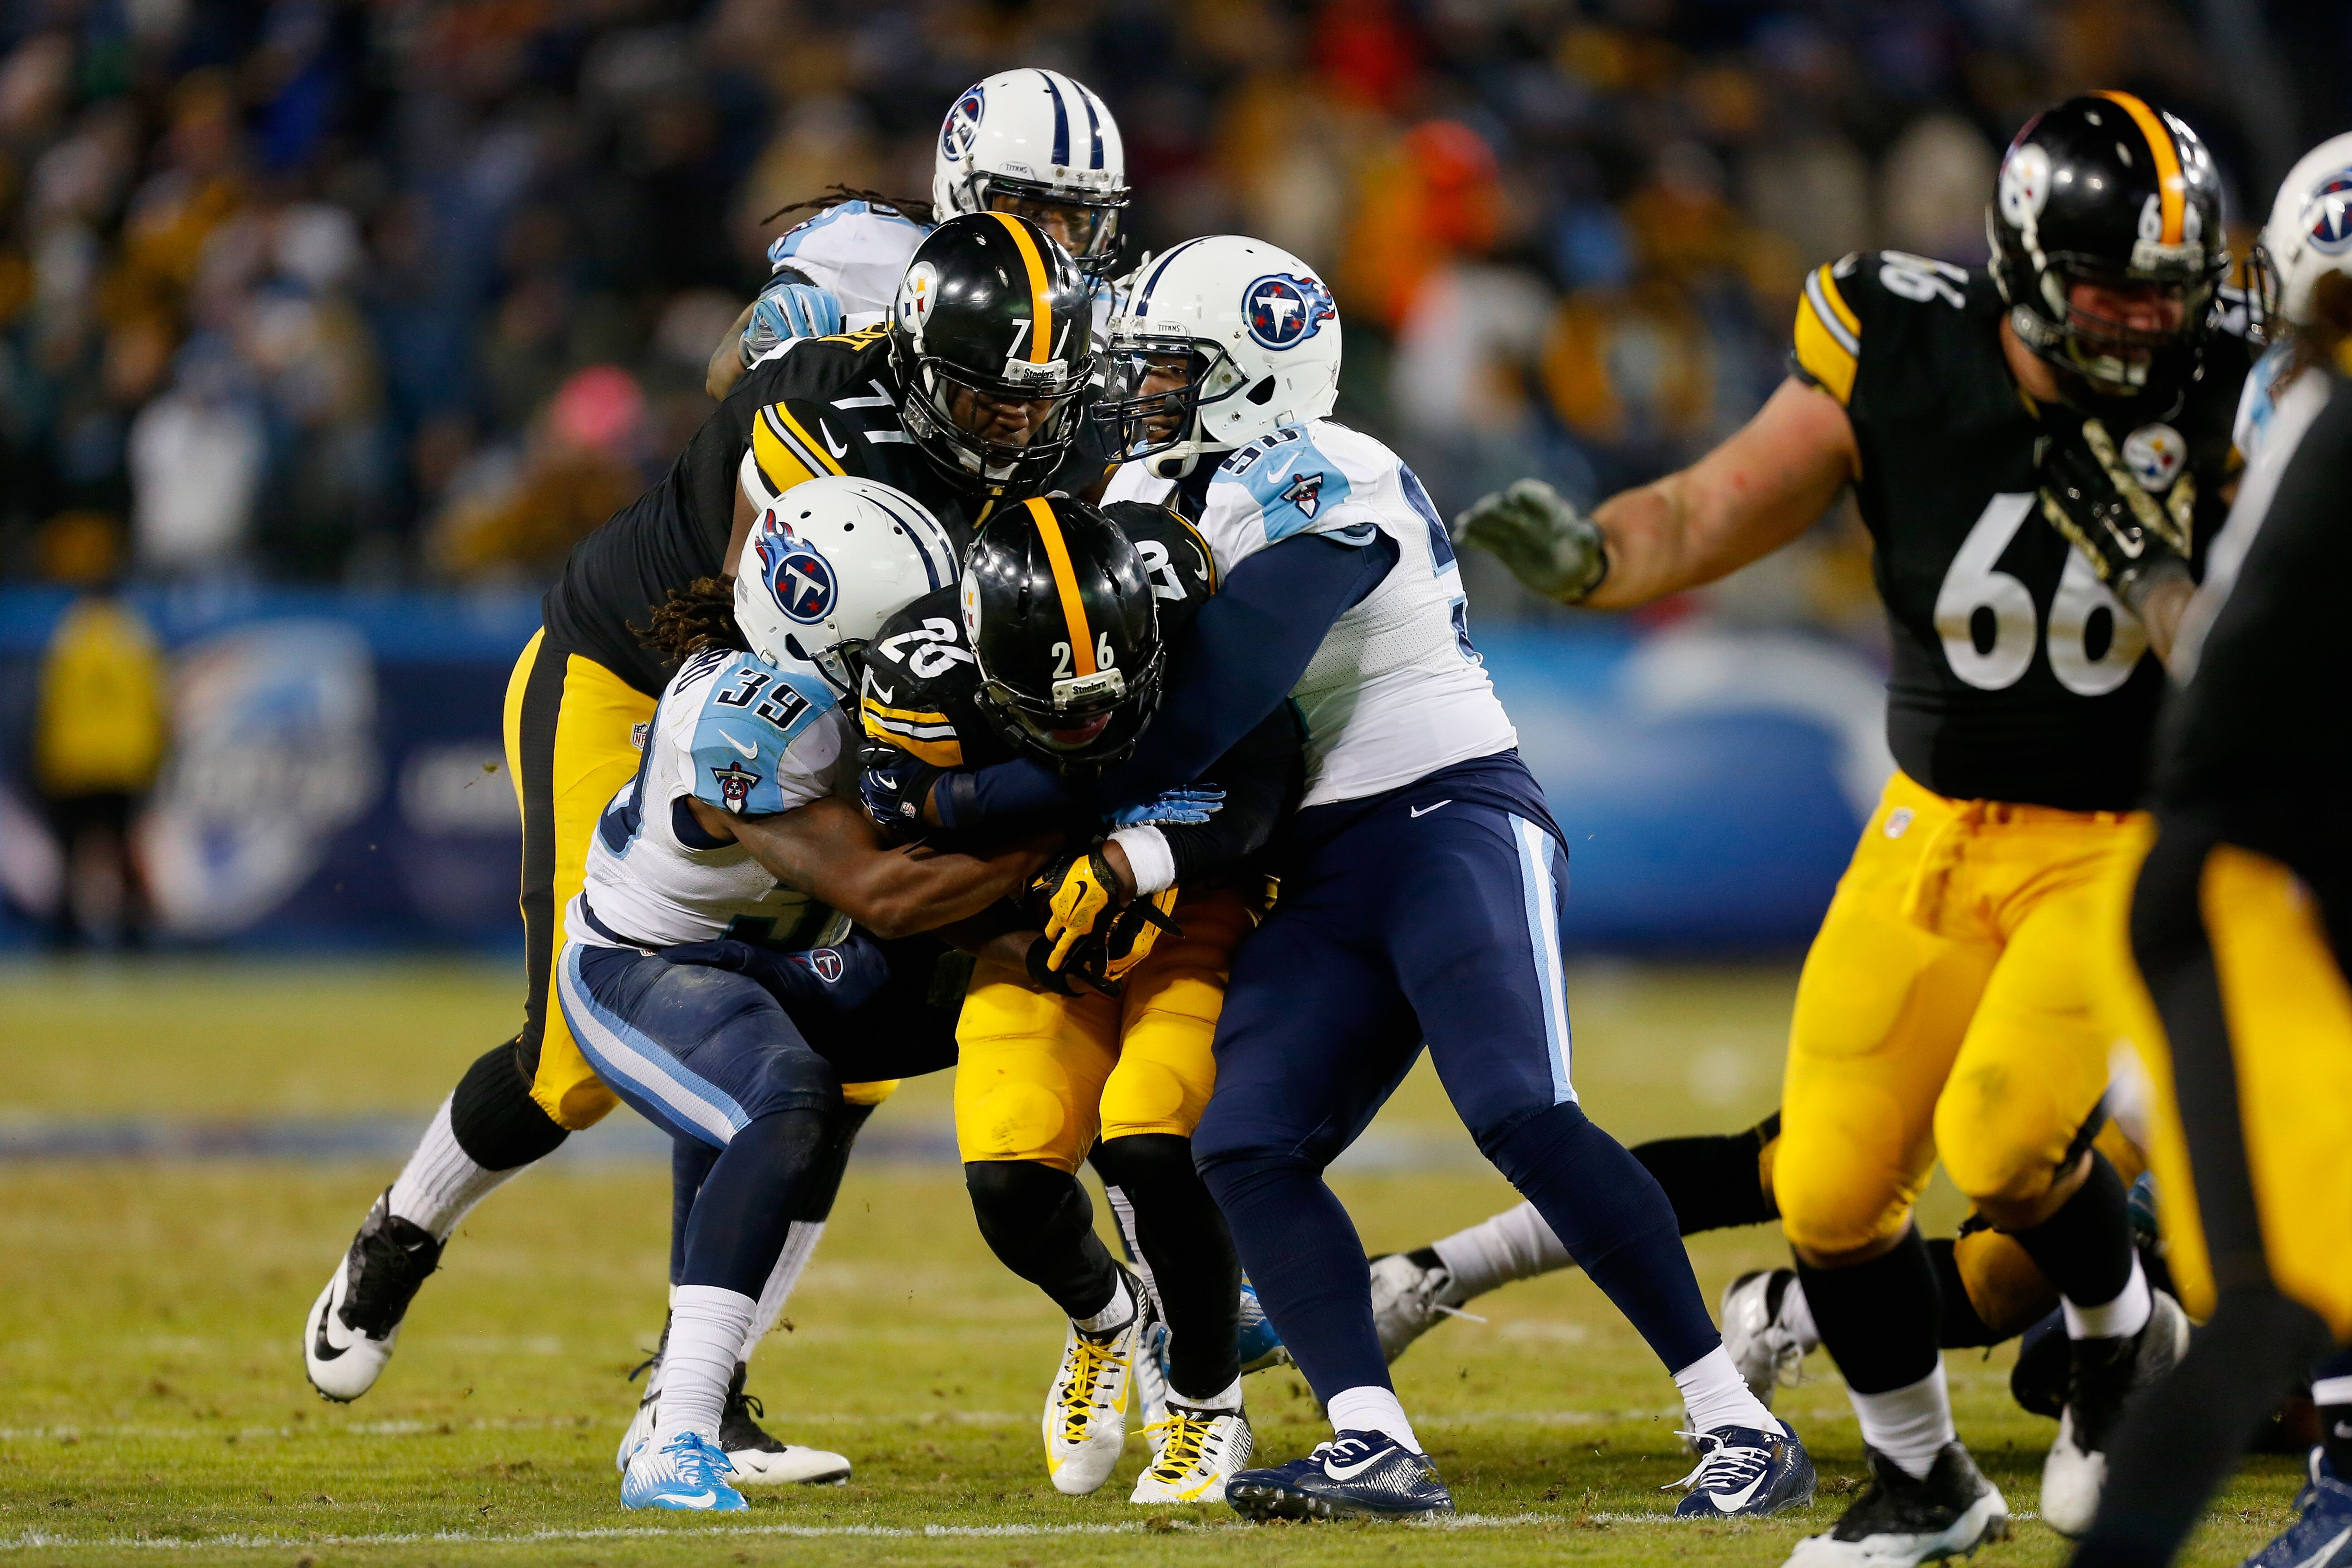 459151694-pittsburgh-steelers-v-tennessee-titans.jpg